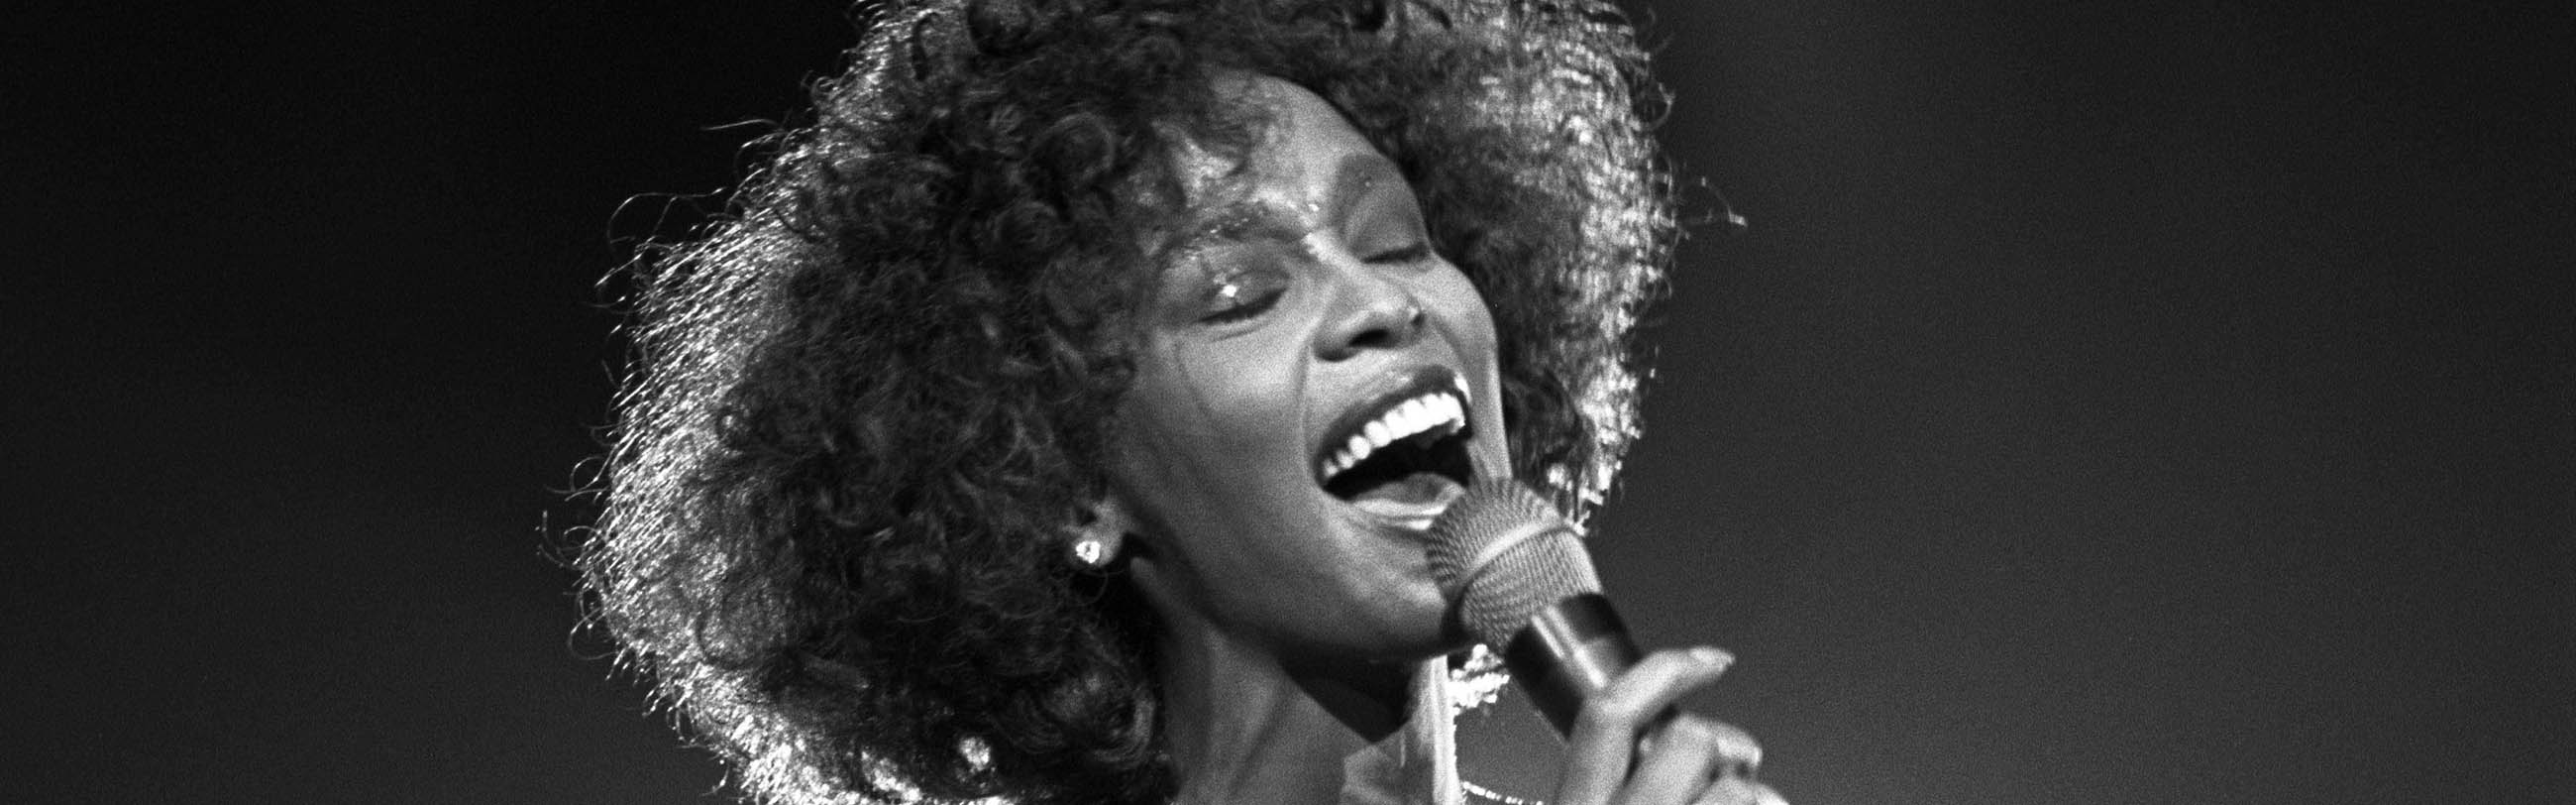 whitney houston fot David Corio